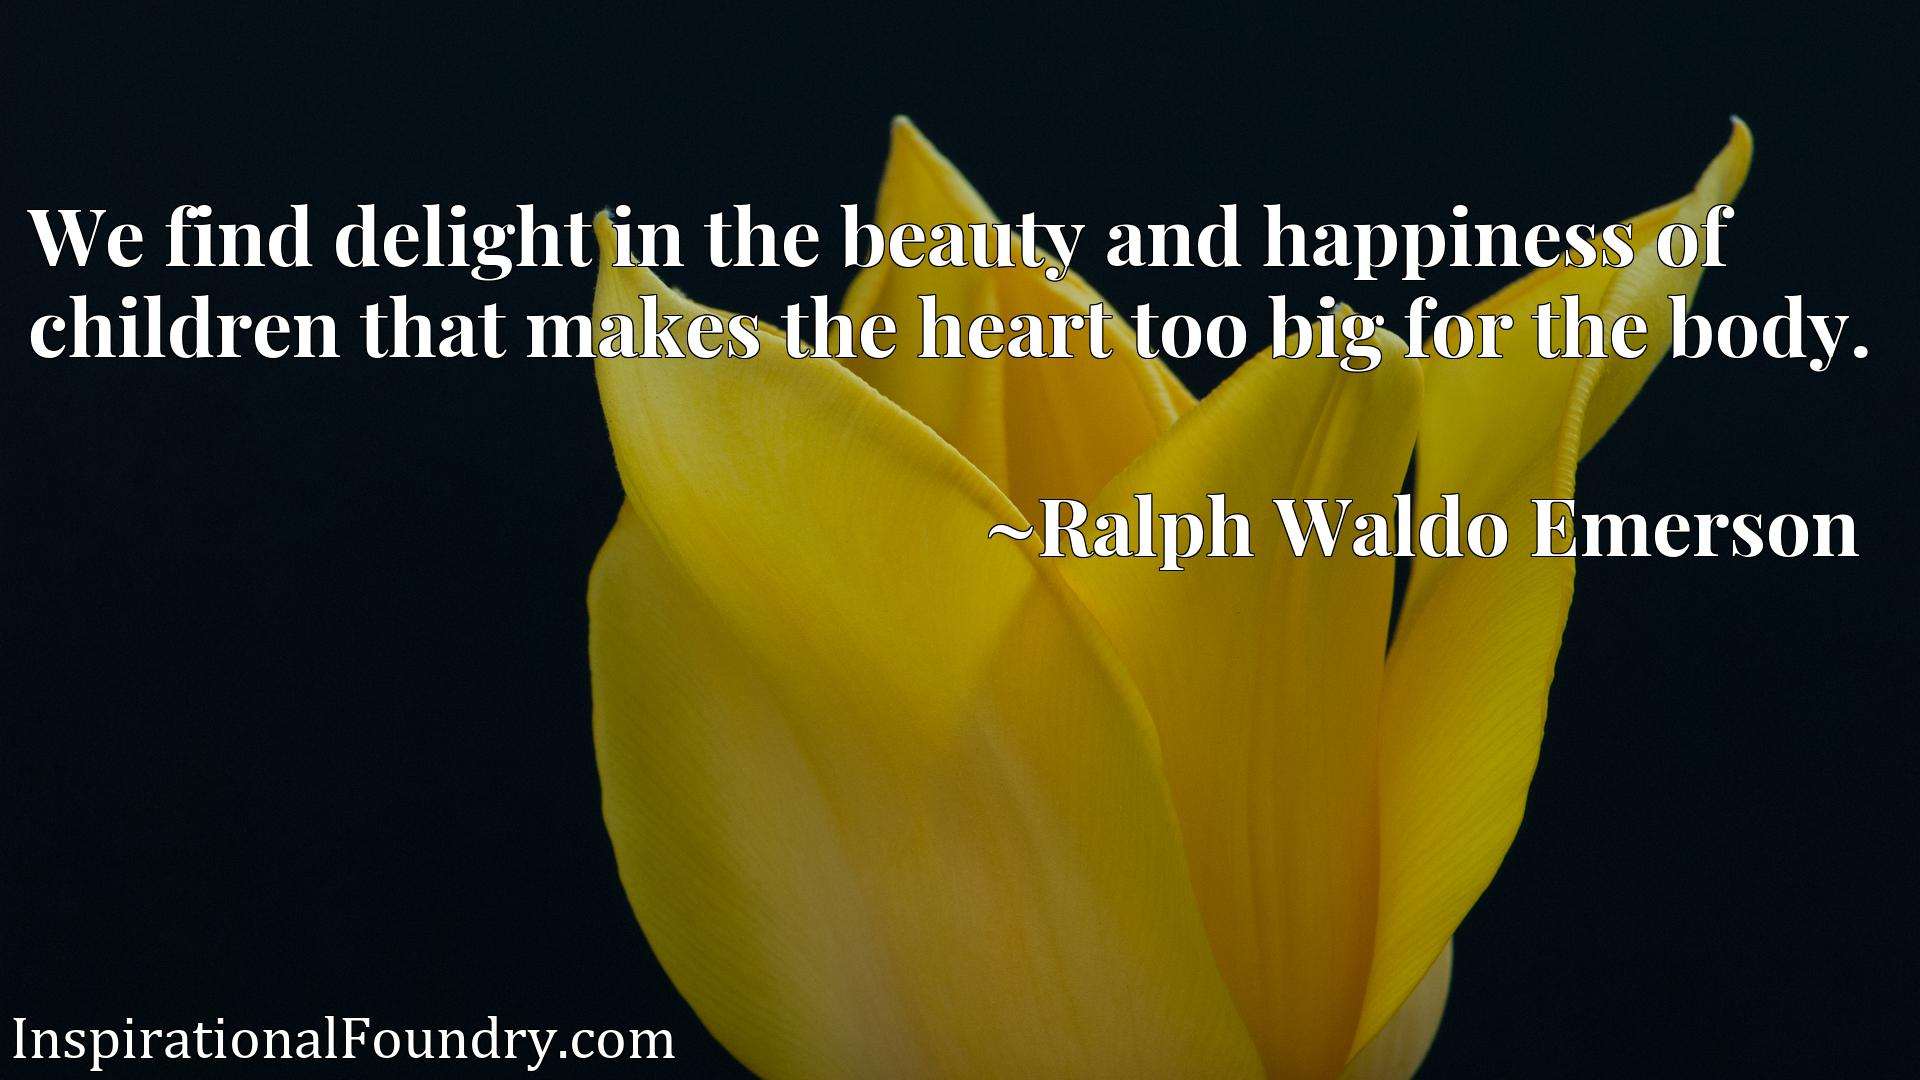 Quote Picture :We find delight in the beauty and happiness of children that makes the heart too big for the body.